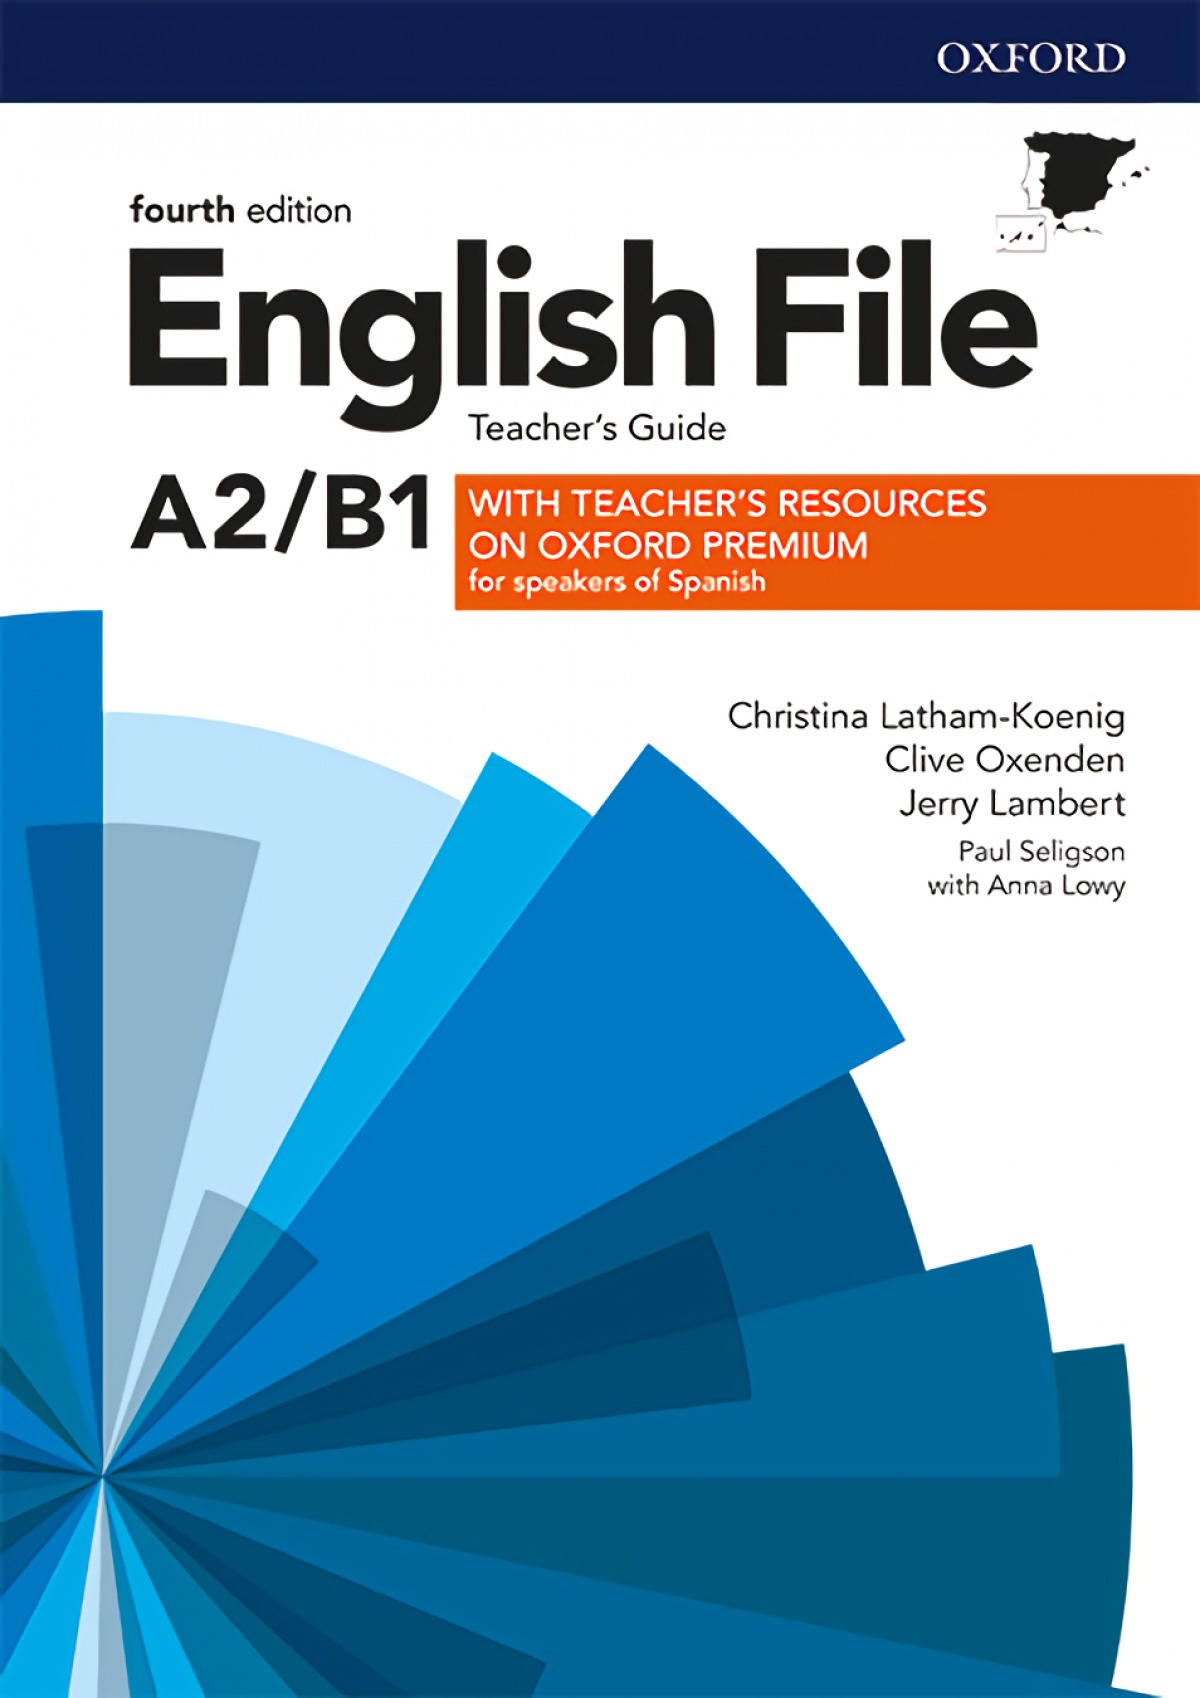 ENGLISH FILE B1 INTERMEDIATE TEACHERS GUIDE AND TEACHERS RESOURCE P